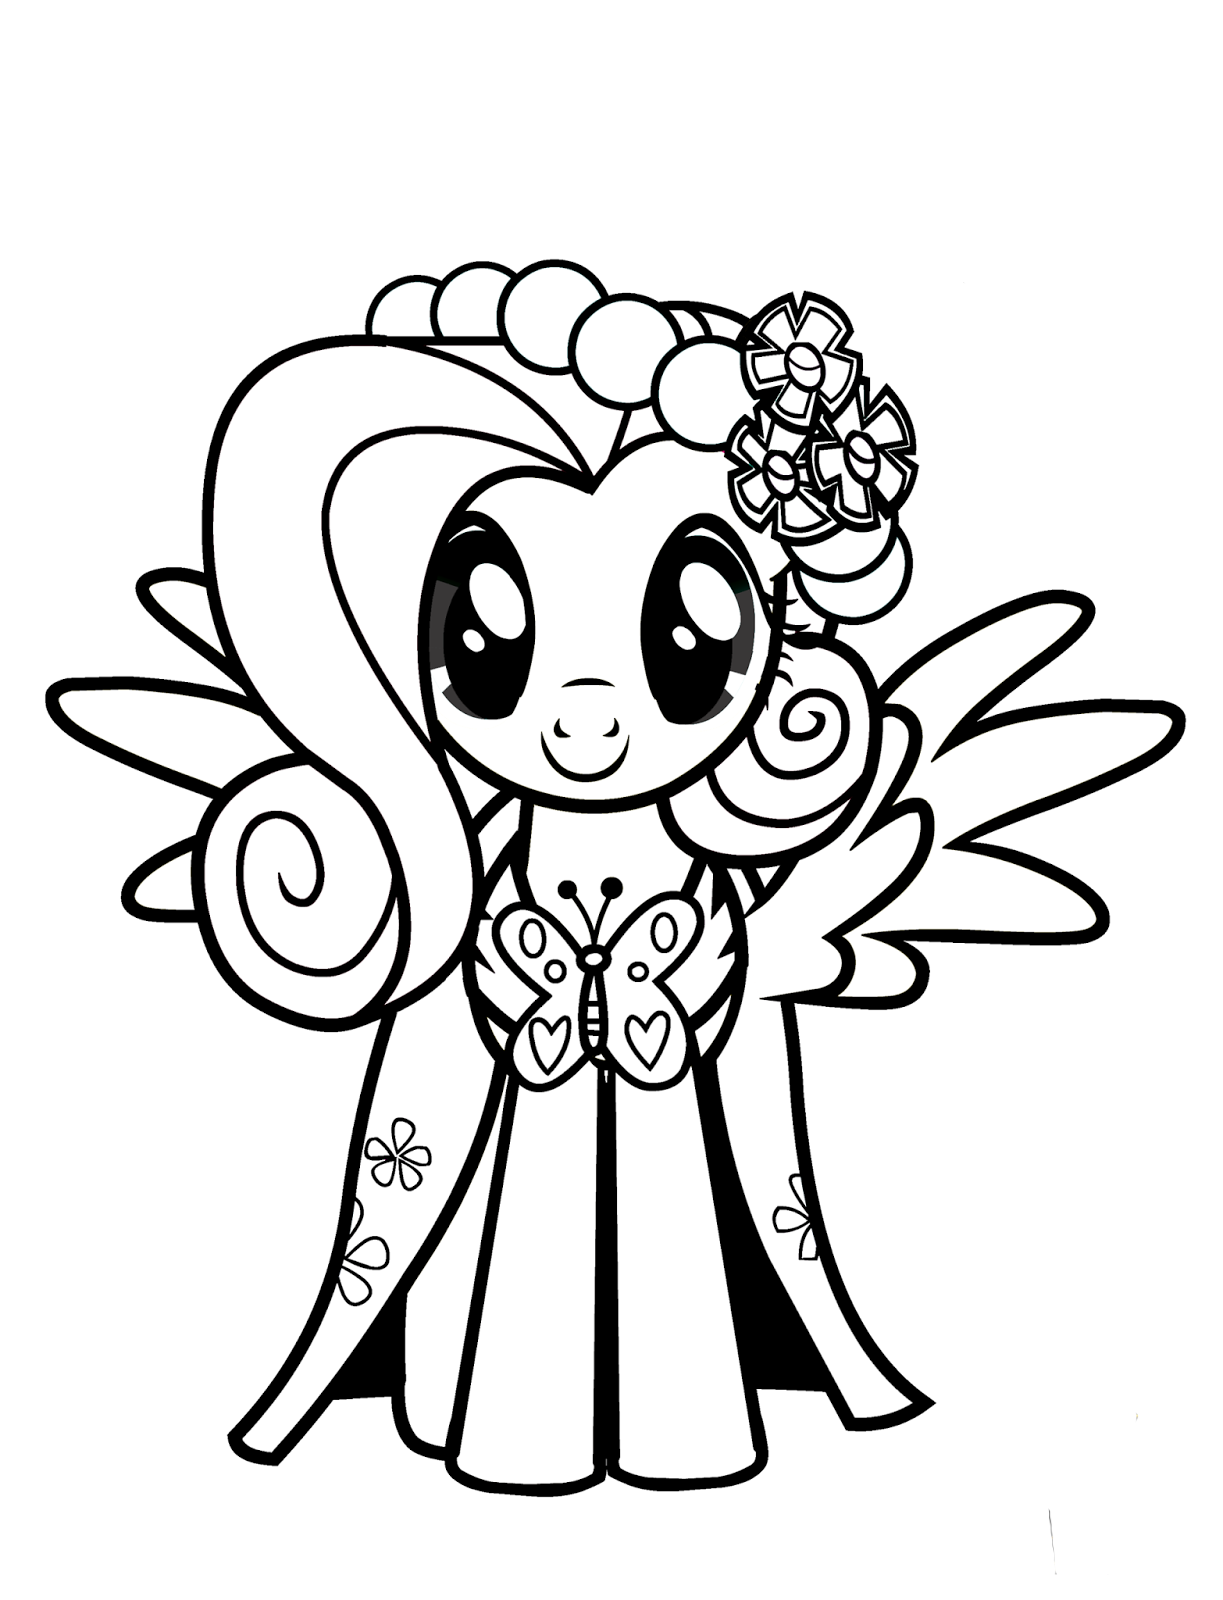 my little pony pages free printable my little pony coloring pages for kids my little pony pages